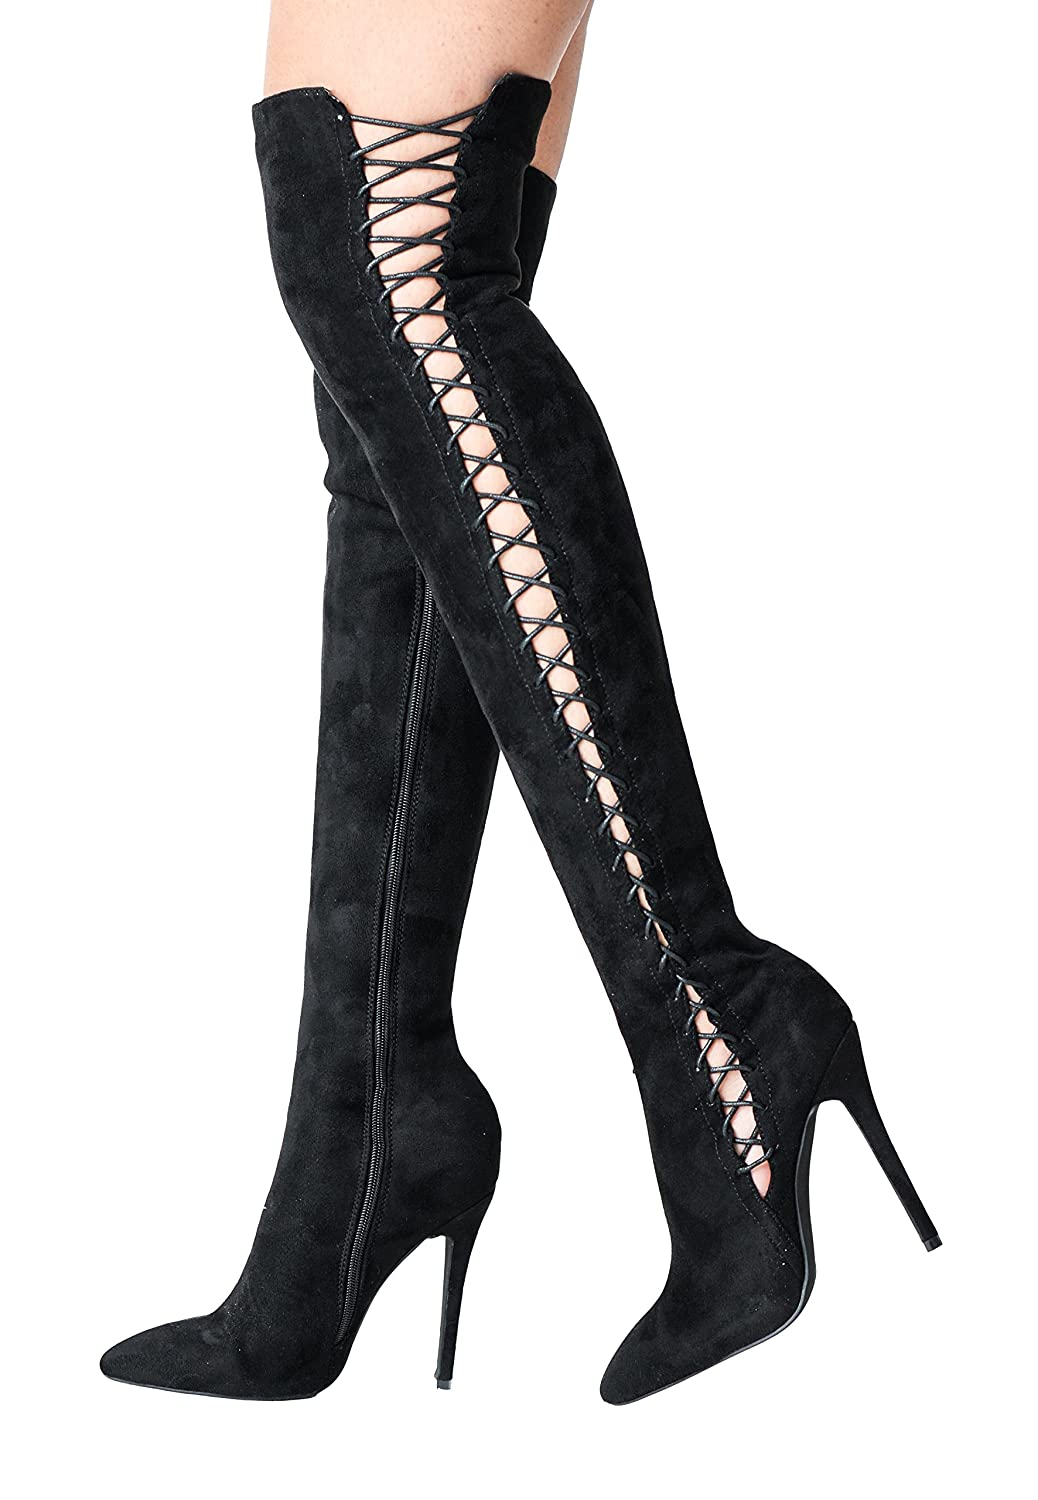 1b963dbdcef Lily s Boutique Womens Over The Knee Faux Suede Lace Up Thigh High Long  Boots Black Pointed Heeled Boots Stiletto Pointy Boots Sexy Boots   Amazon.co.uk  ...